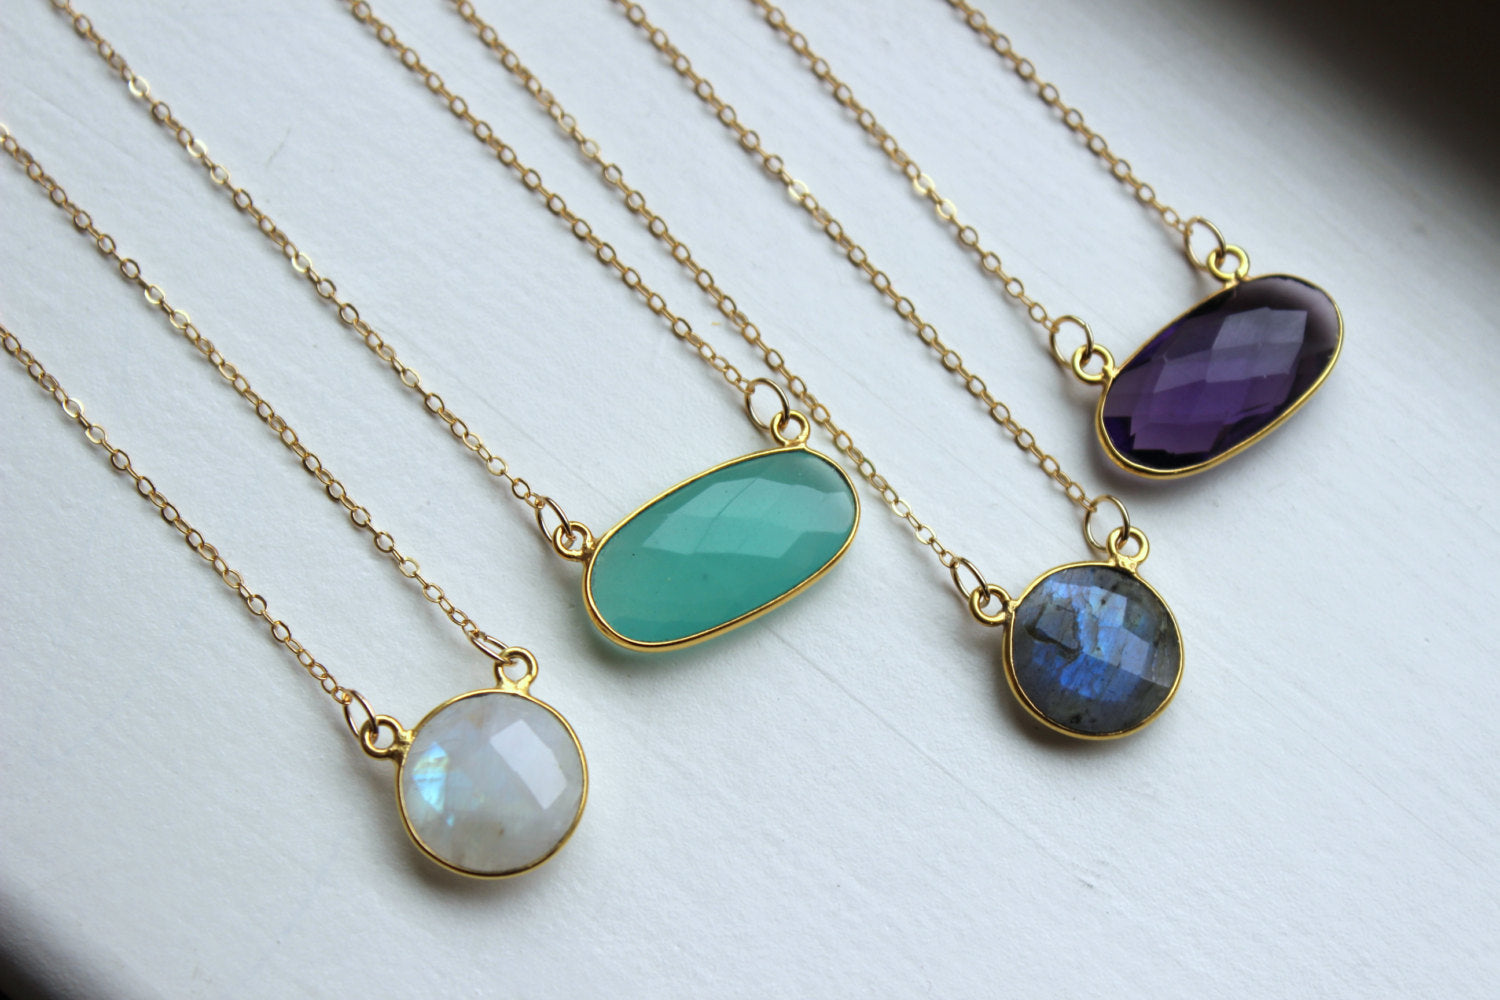 Gold Necklace Dainty Gem Necklace Gold Jewelry Labradorite Necklace Minimalist Necklace Jewelry Aqua Chalcedony Rainbow Moonstone Amethyst